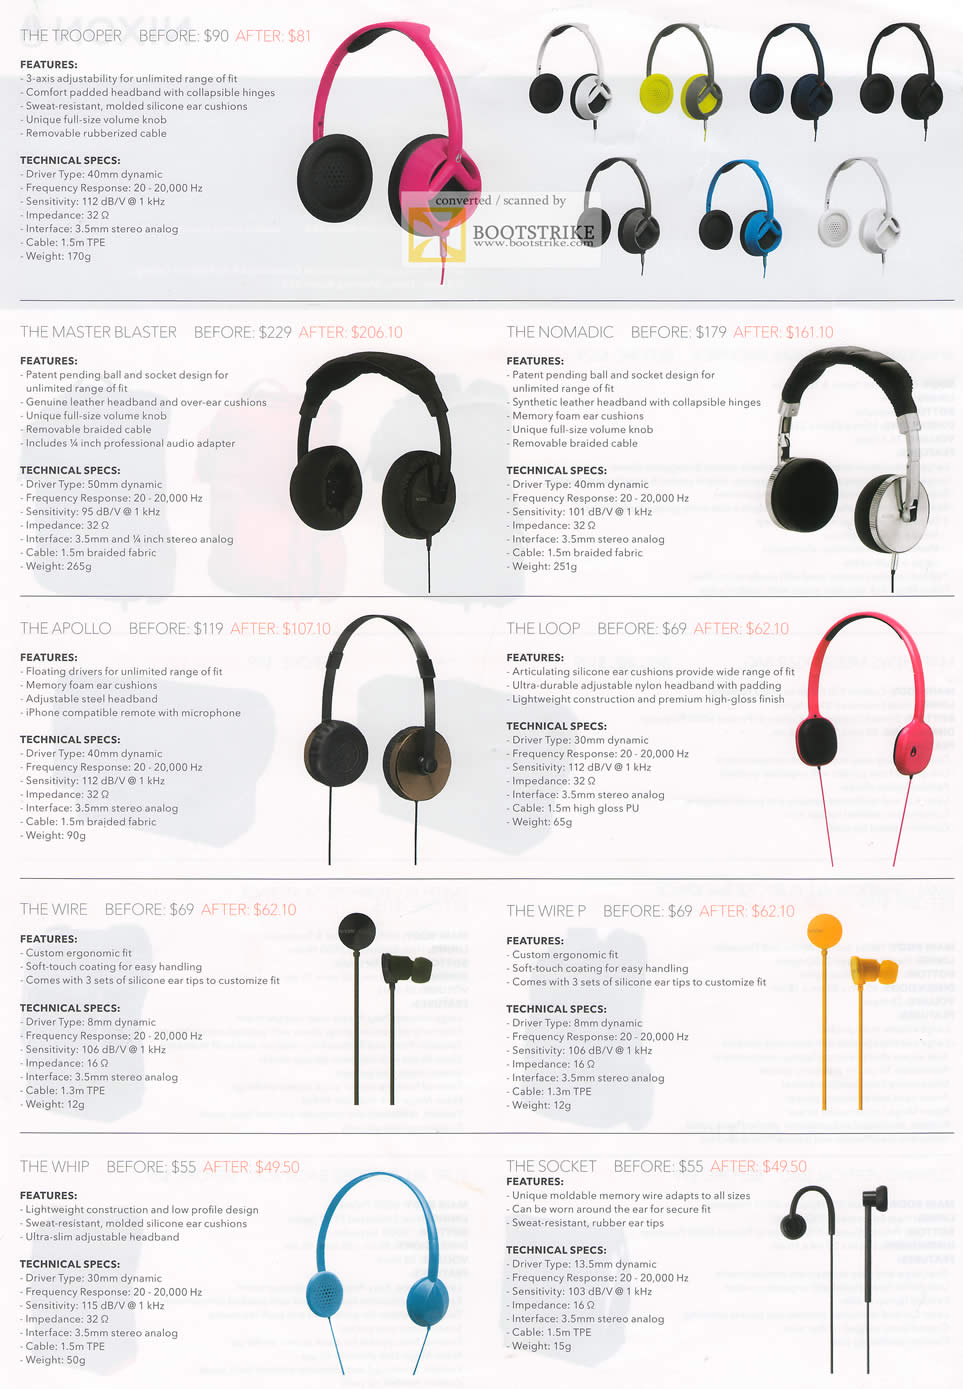 PC Show 2011 price list image brochure of EpiCentre Nixon Headphones The Tropper Master Blaster Nomadic Apollo Loop Wire P Whip Socket